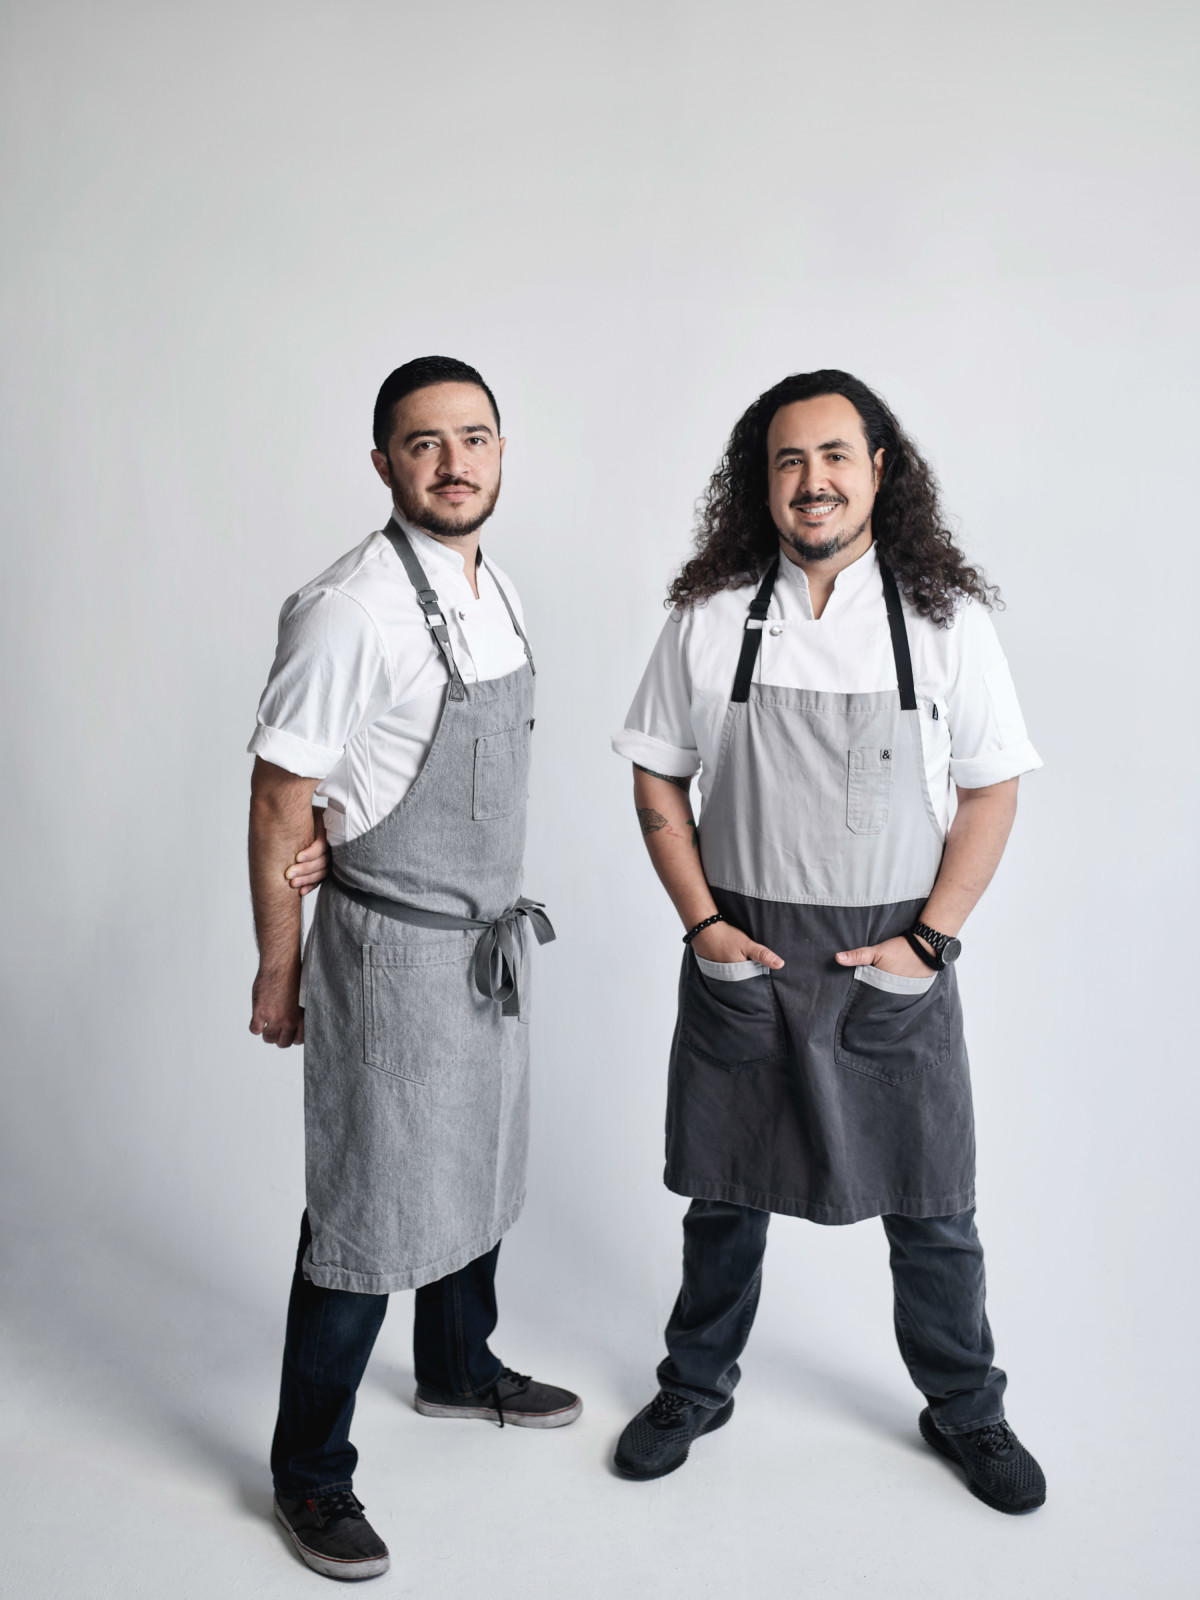 Diego Galicia and Rico Torres from Mixtli